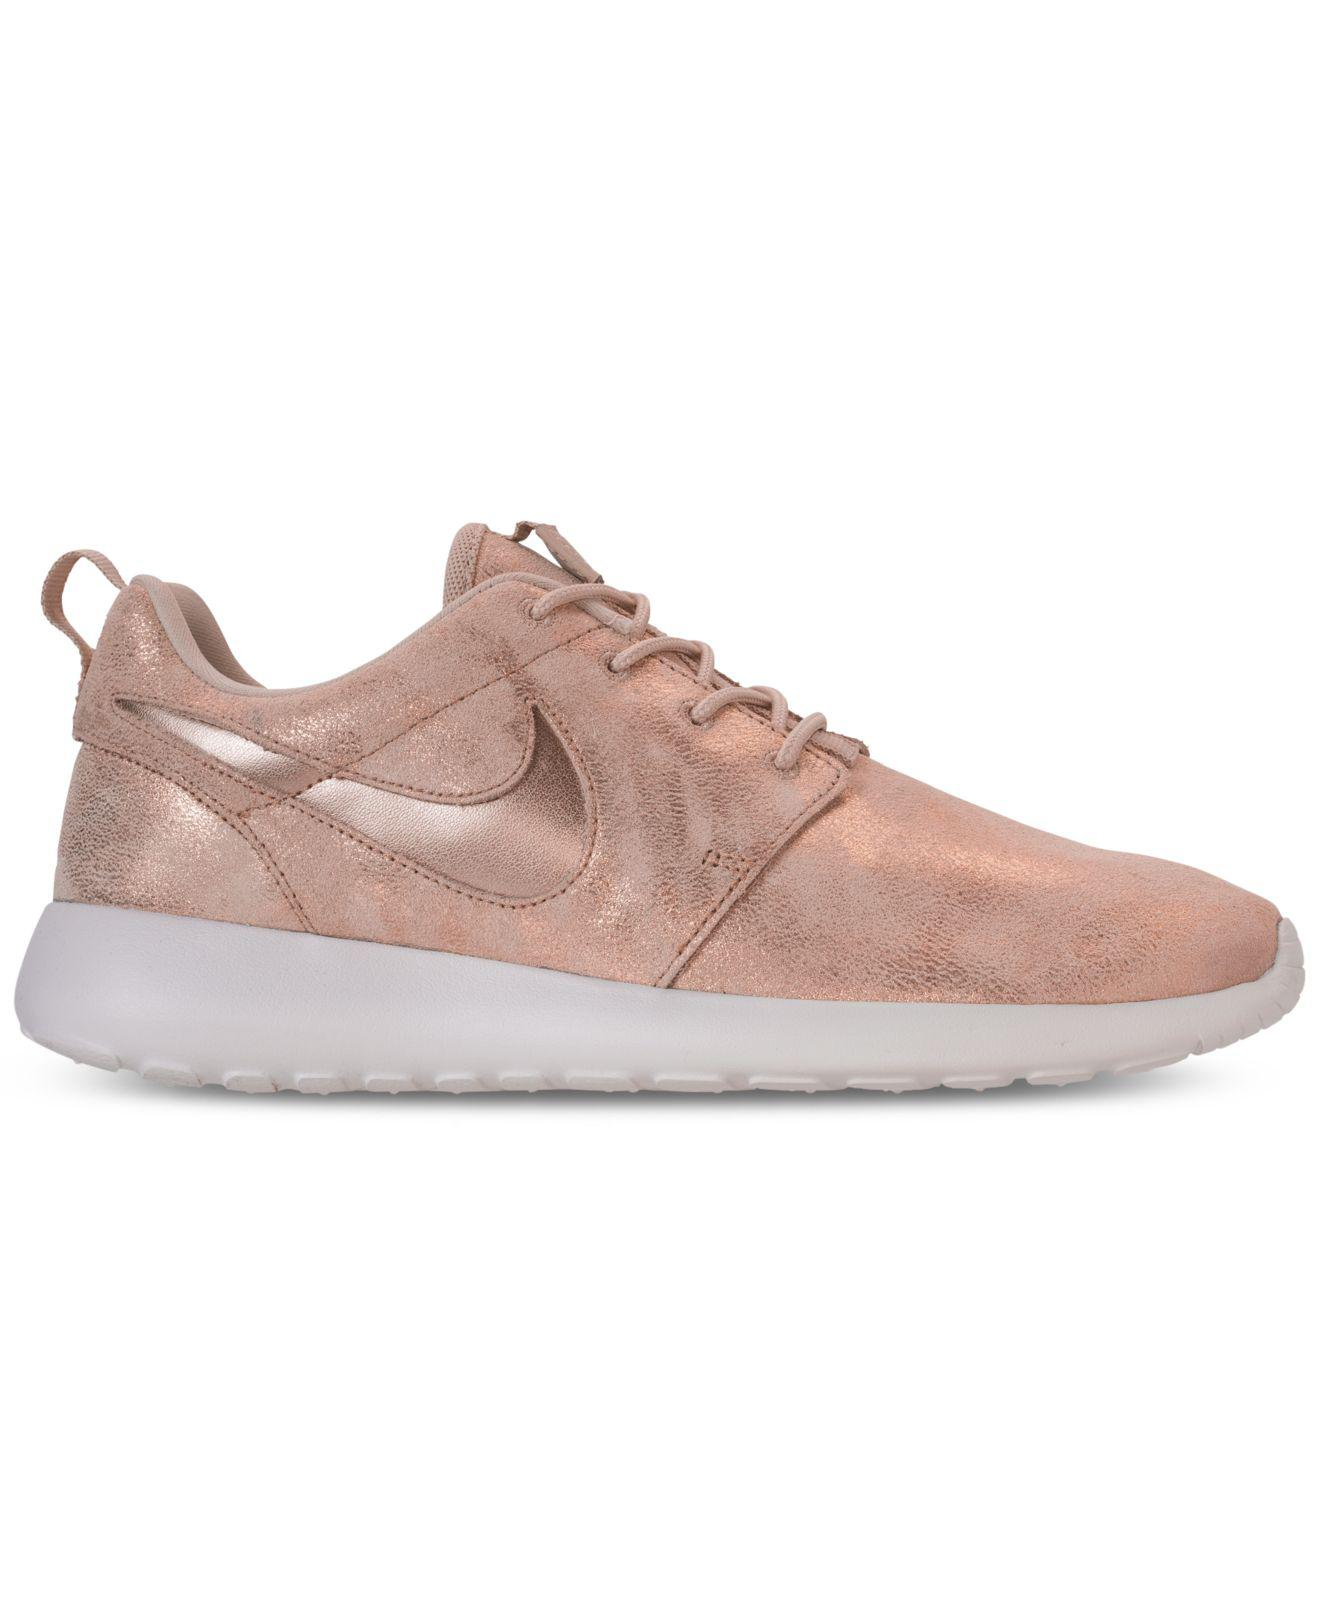 huge selection of 880f1 32c90 Nike - Multicolor Roshe One Premium Casual Sneakers From Finish Line - Lyst.  View fullscreen